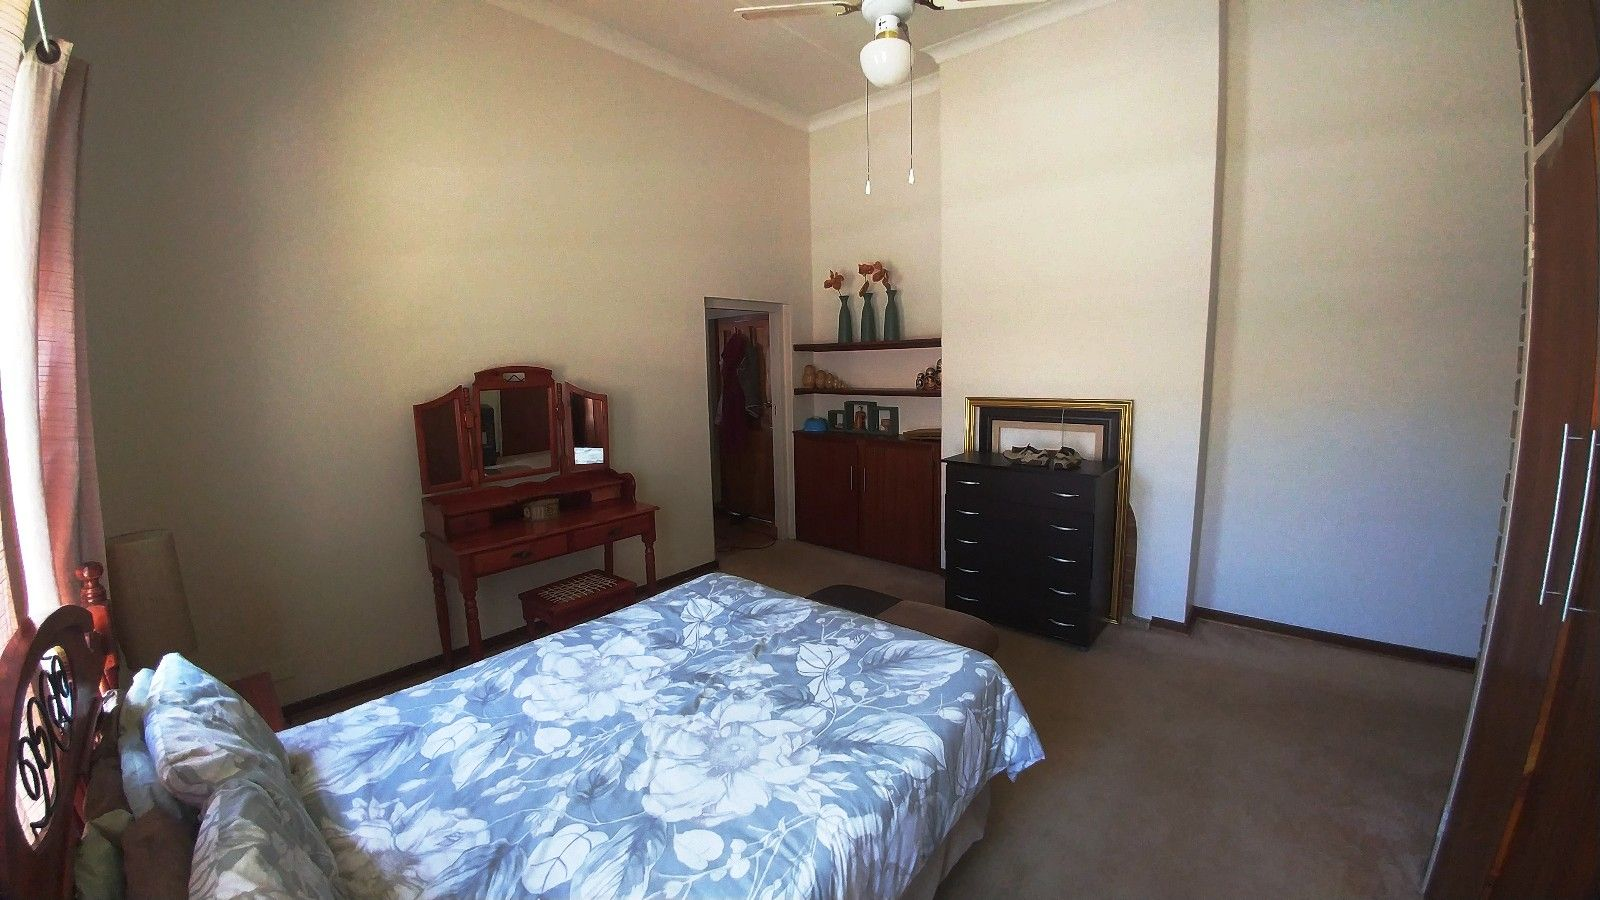 Potchefstroom Central for sale property. Ref No: 13460775. Picture no 11